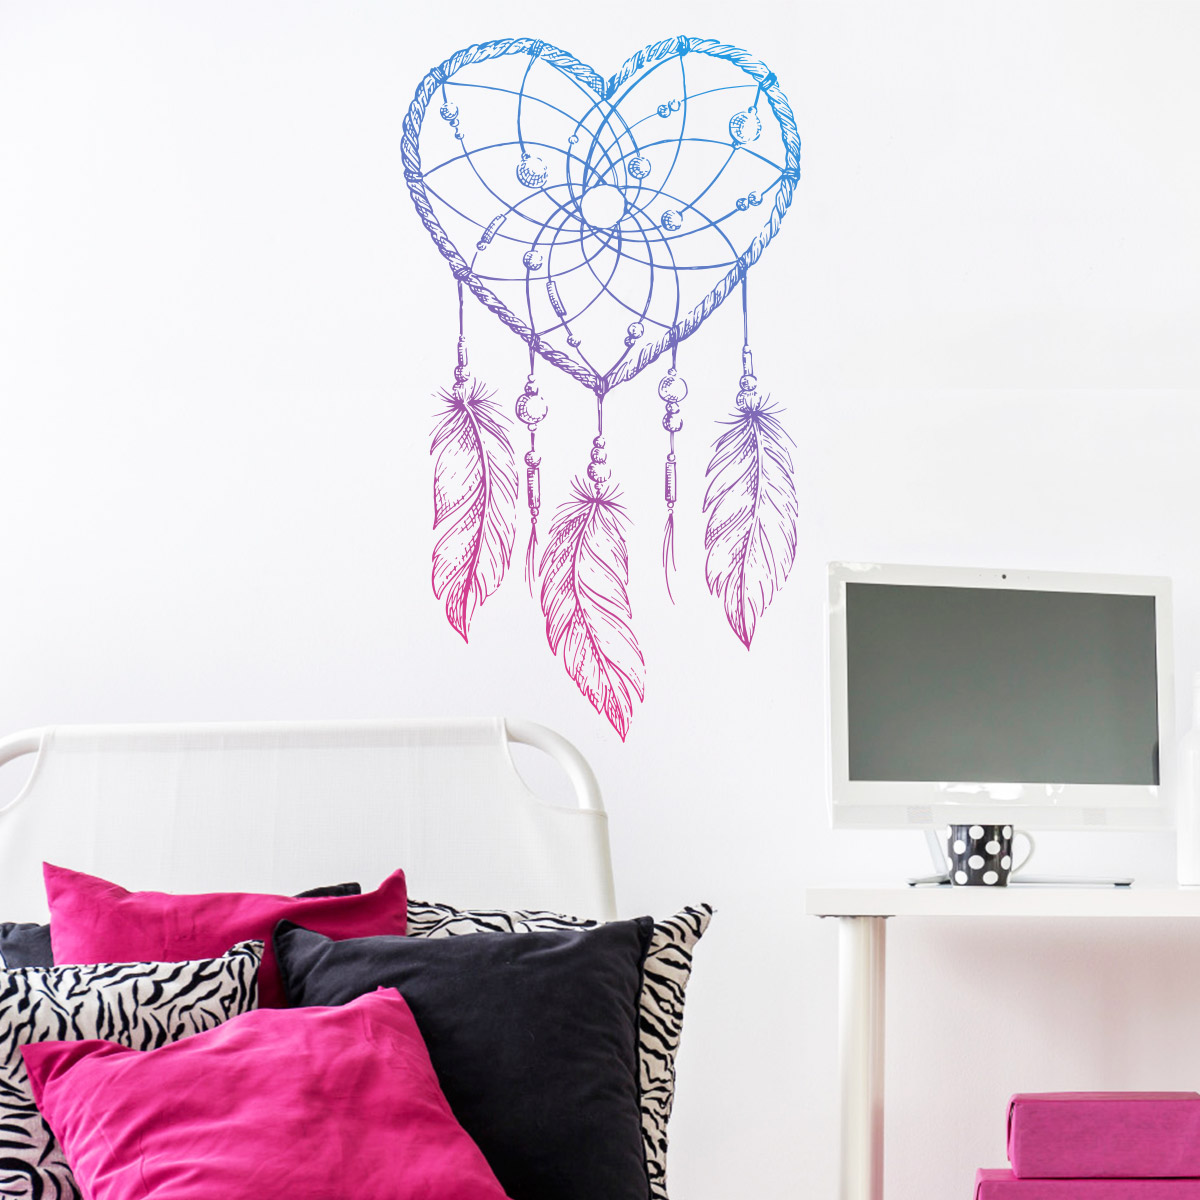 sticker boh me attrape r ves c ur et plumes stickers. Black Bedroom Furniture Sets. Home Design Ideas